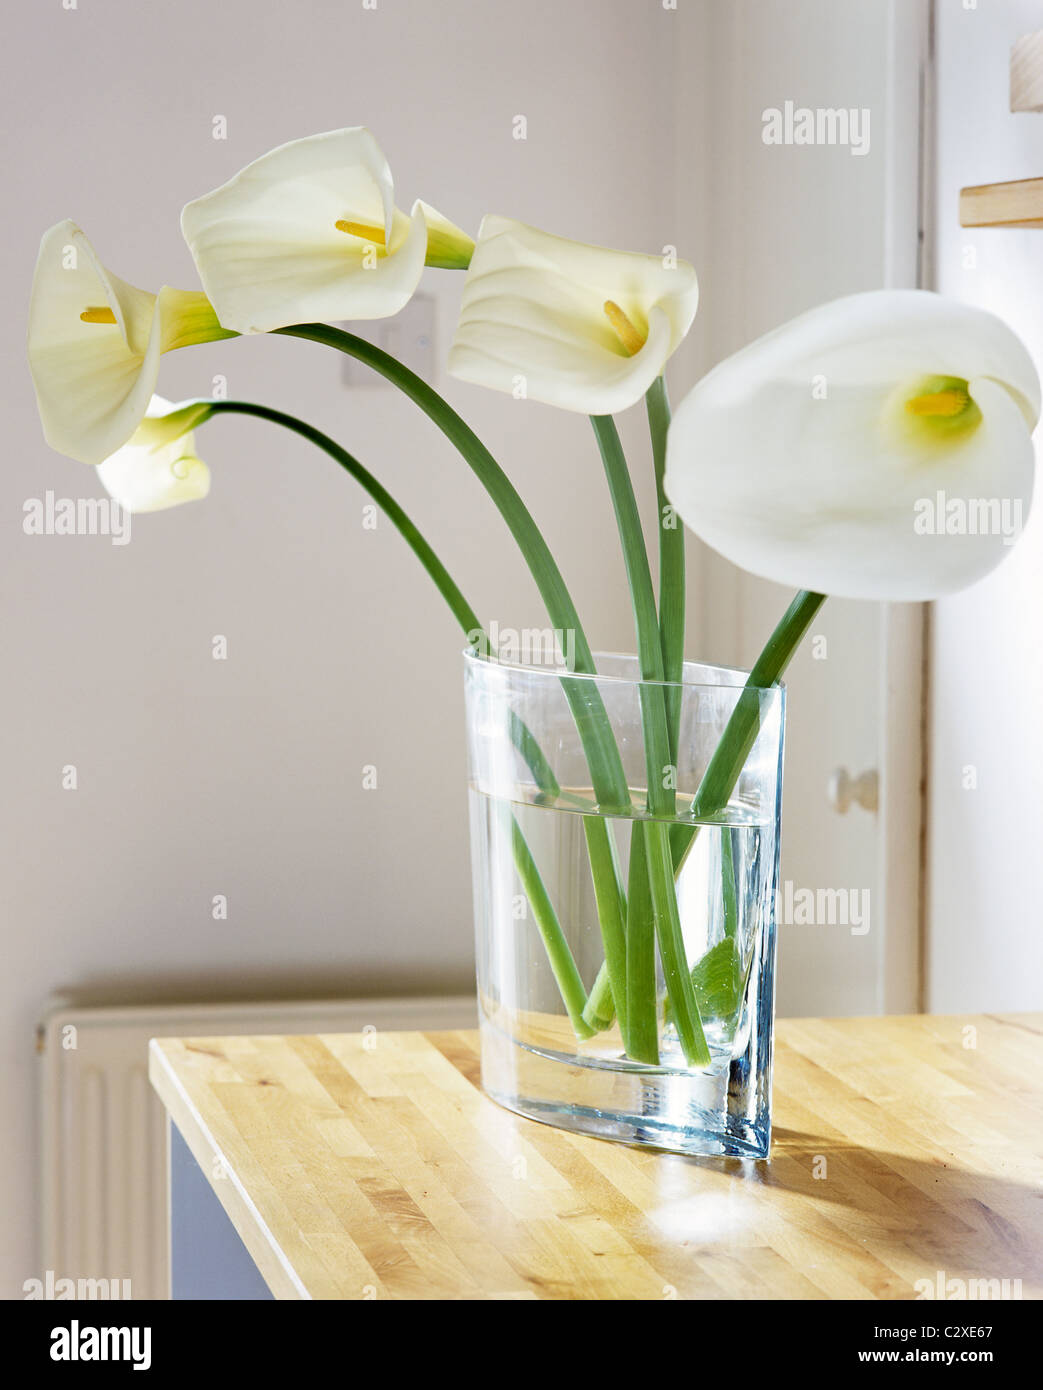 A detail of a modern sitting room showing a flower arrangement of a detail of a modern sitting room showing a flower arrangement of white arum lilies in a glass vase on wooden work surface reviewsmspy